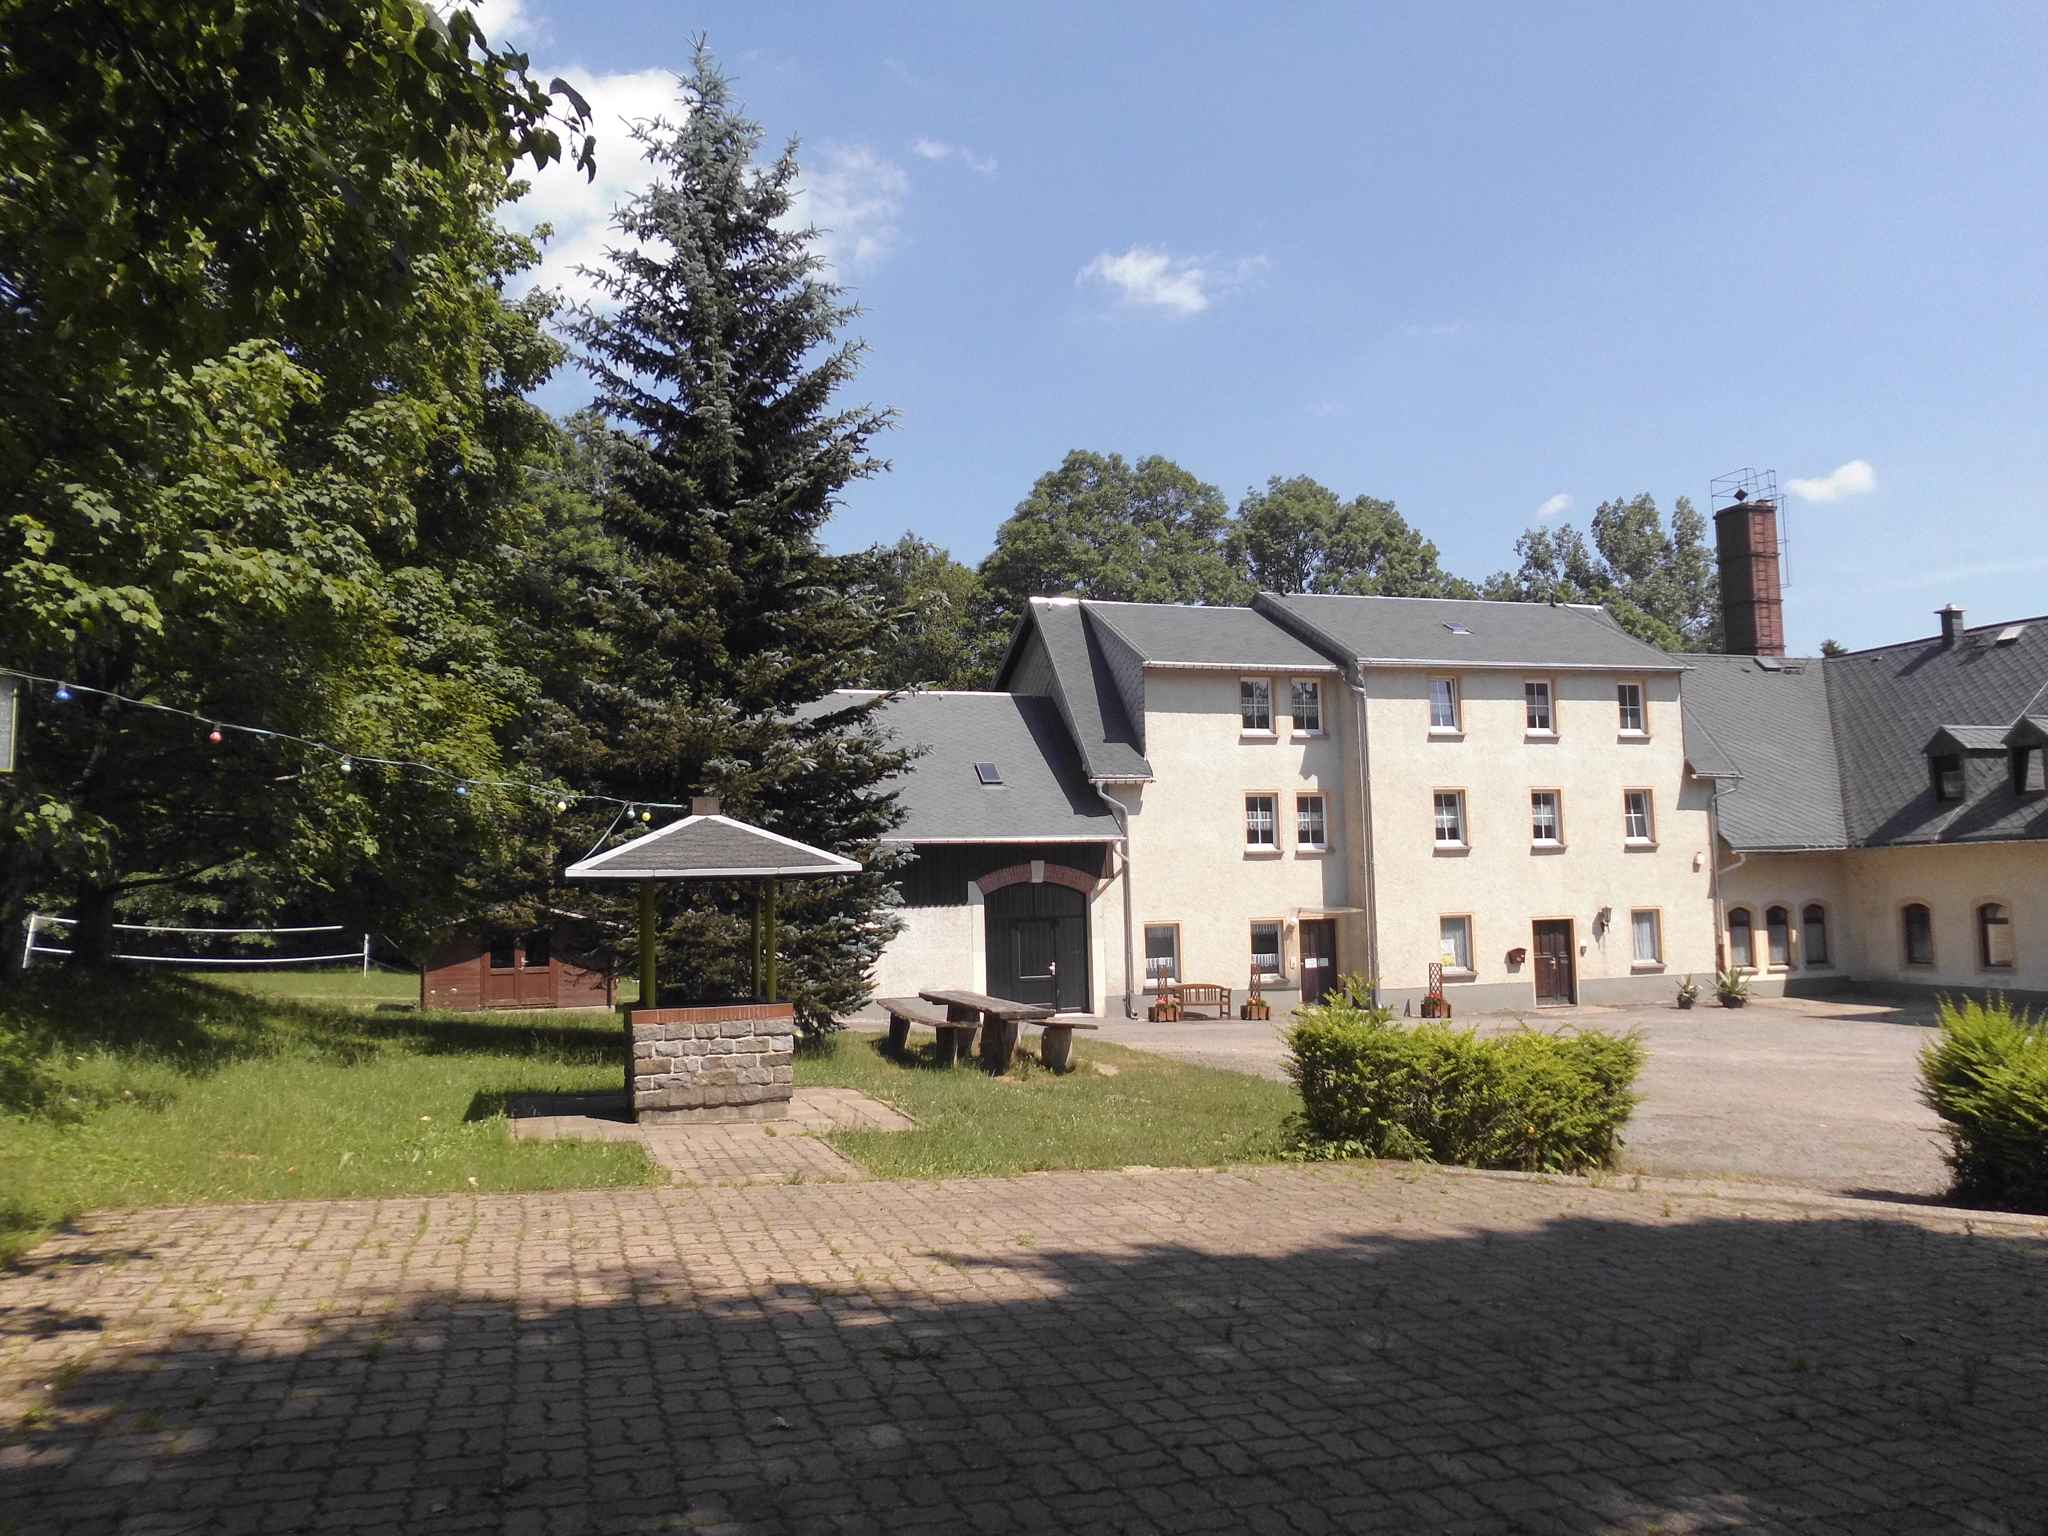 Holiday apartment in ruhiger Waldrandlage (322516), Sayda, The Ore Mountains, Saxony, Germany, picture 3